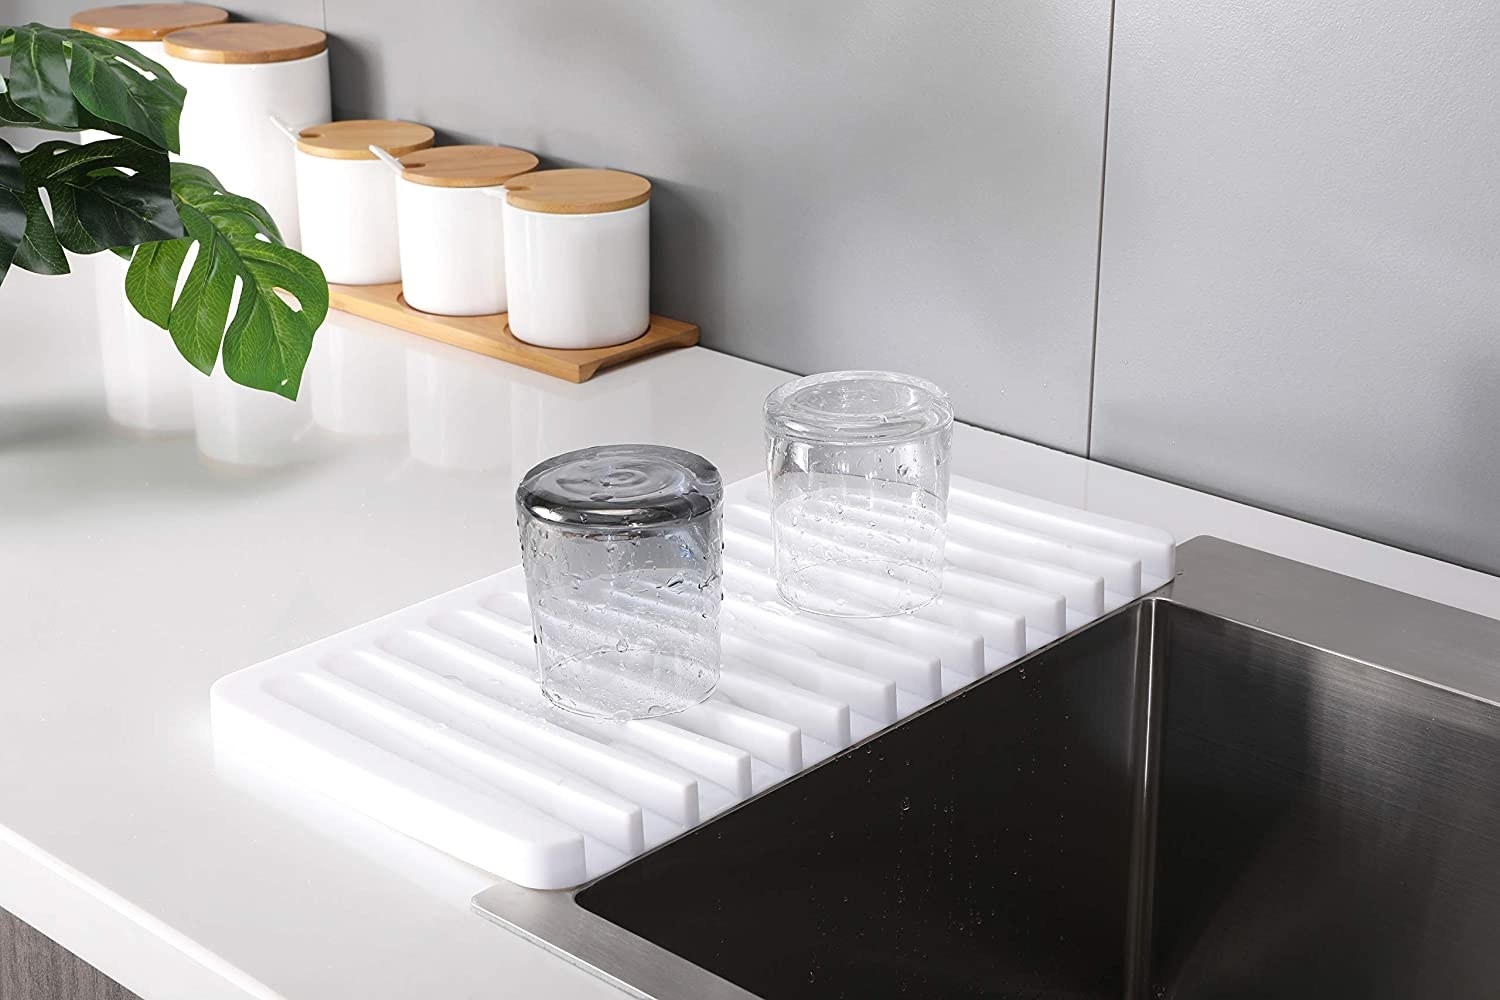 A silicone drainage mat next to a sink with two wet glasses on top